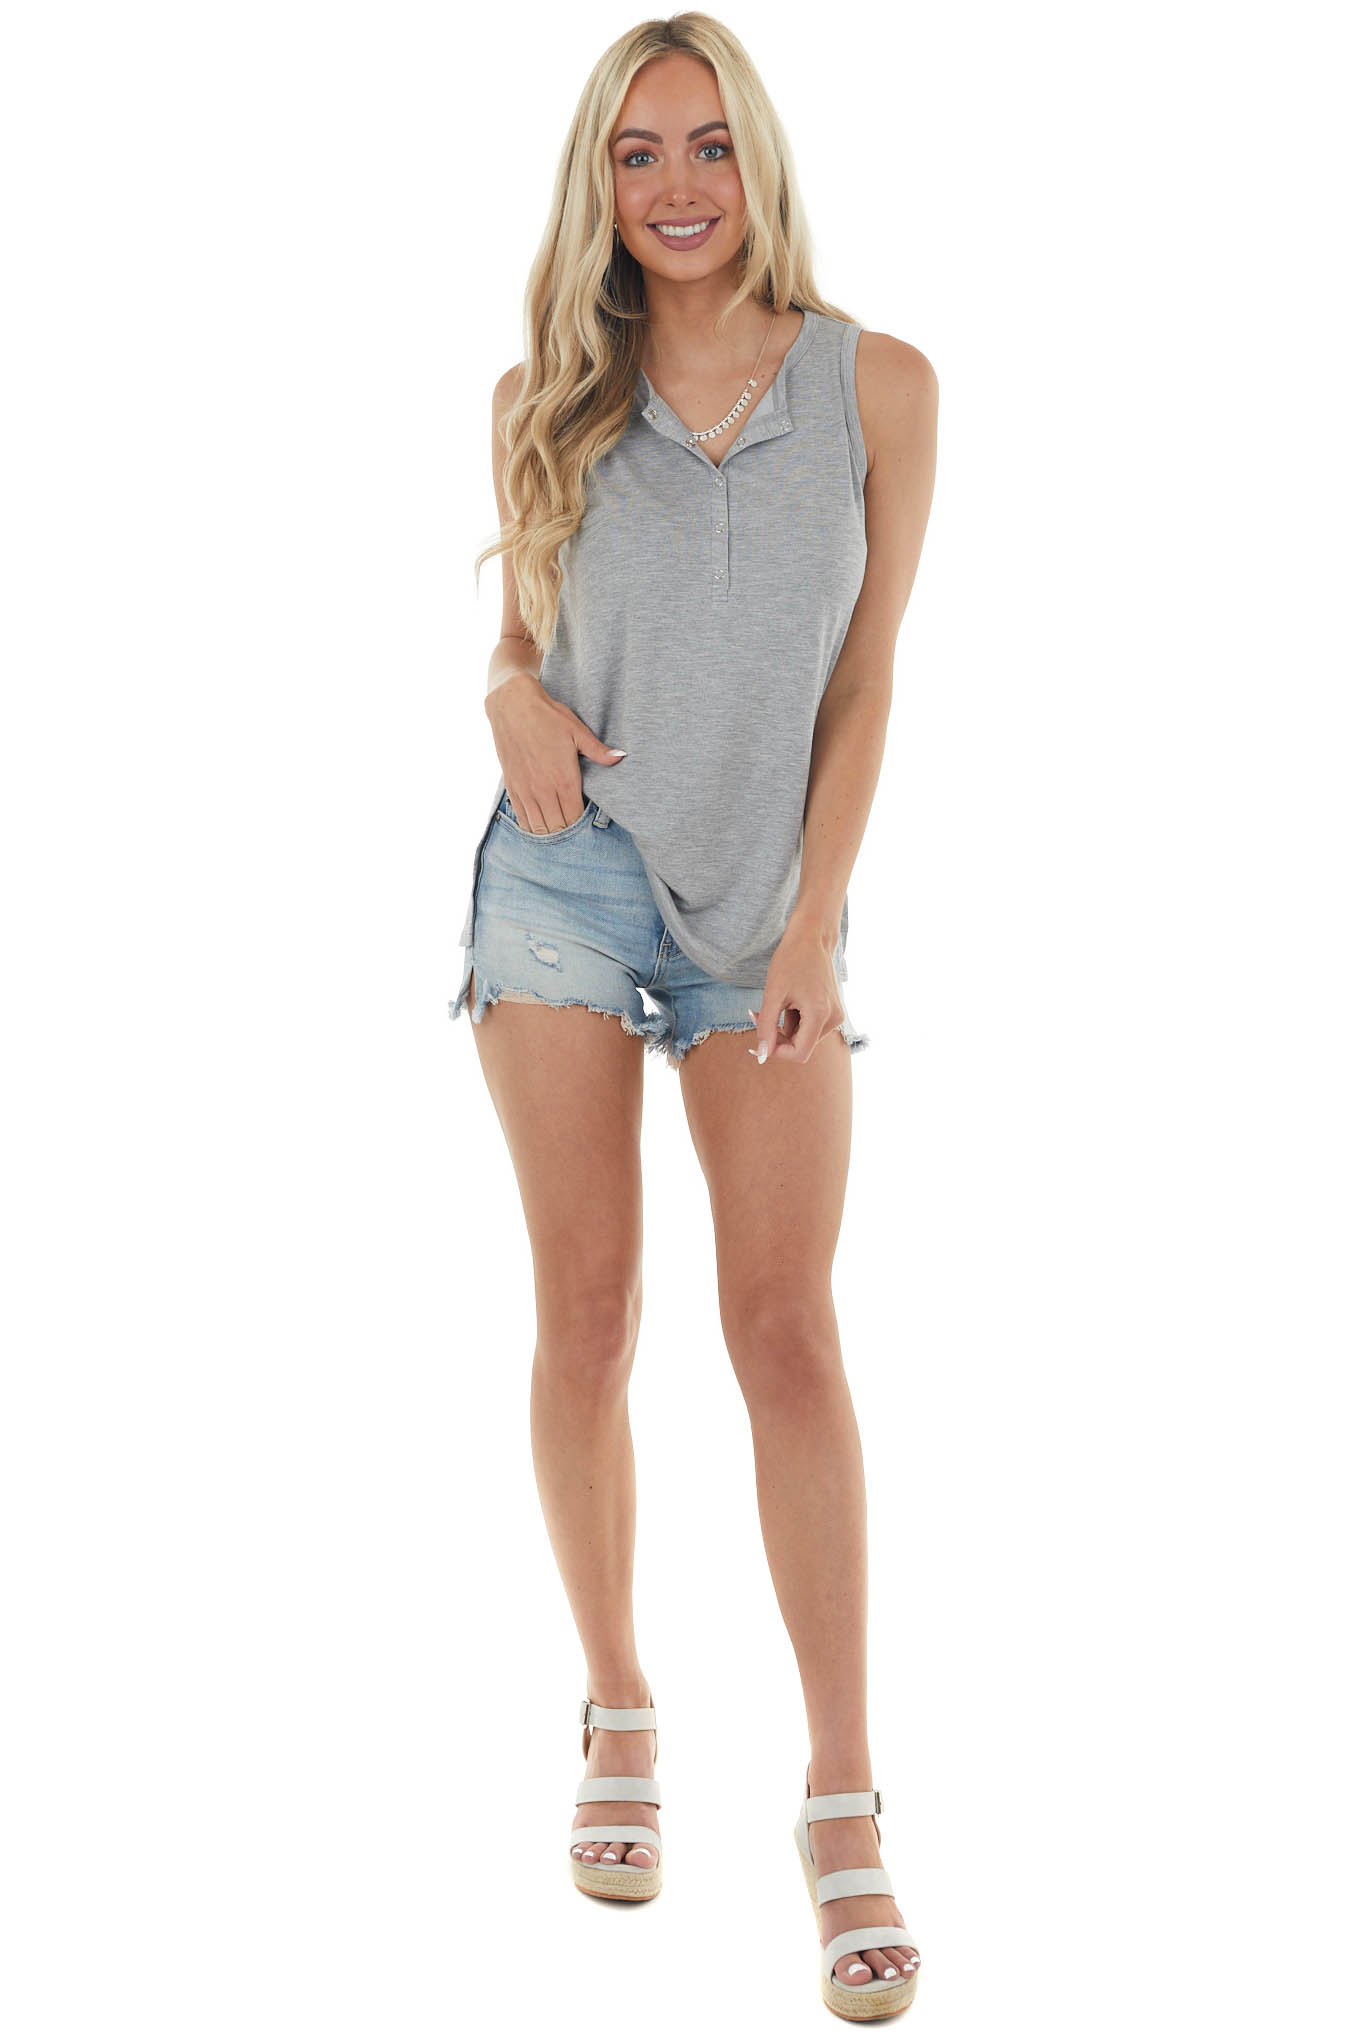 Heathered Steel Snap Button Up Knit Tank Top